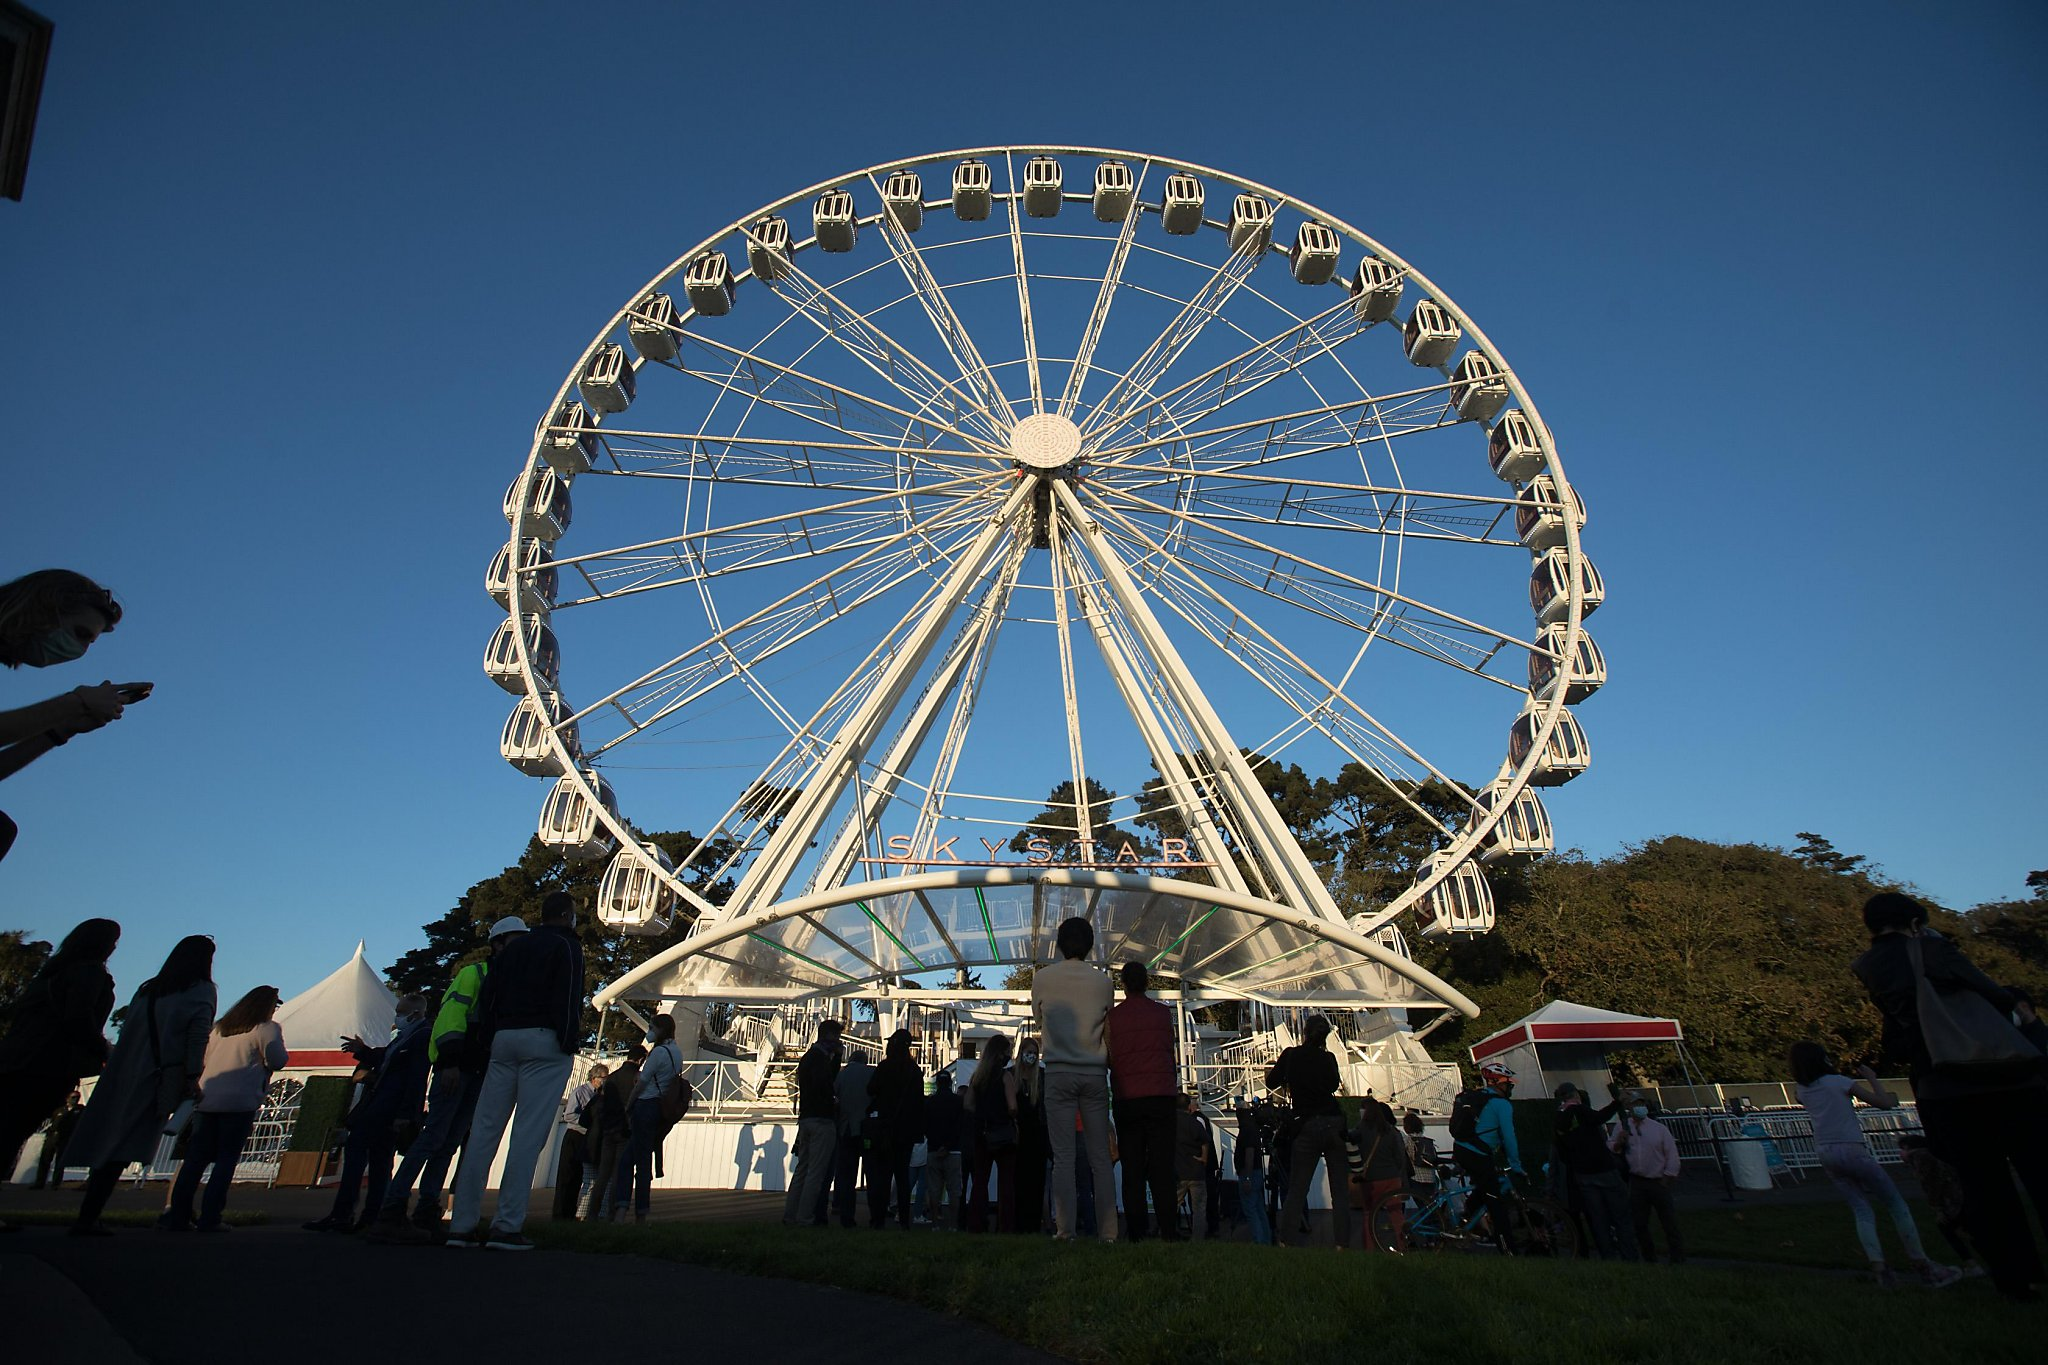 I rode the new Ferris wheel in Golden Gate Park. Here's what it was like